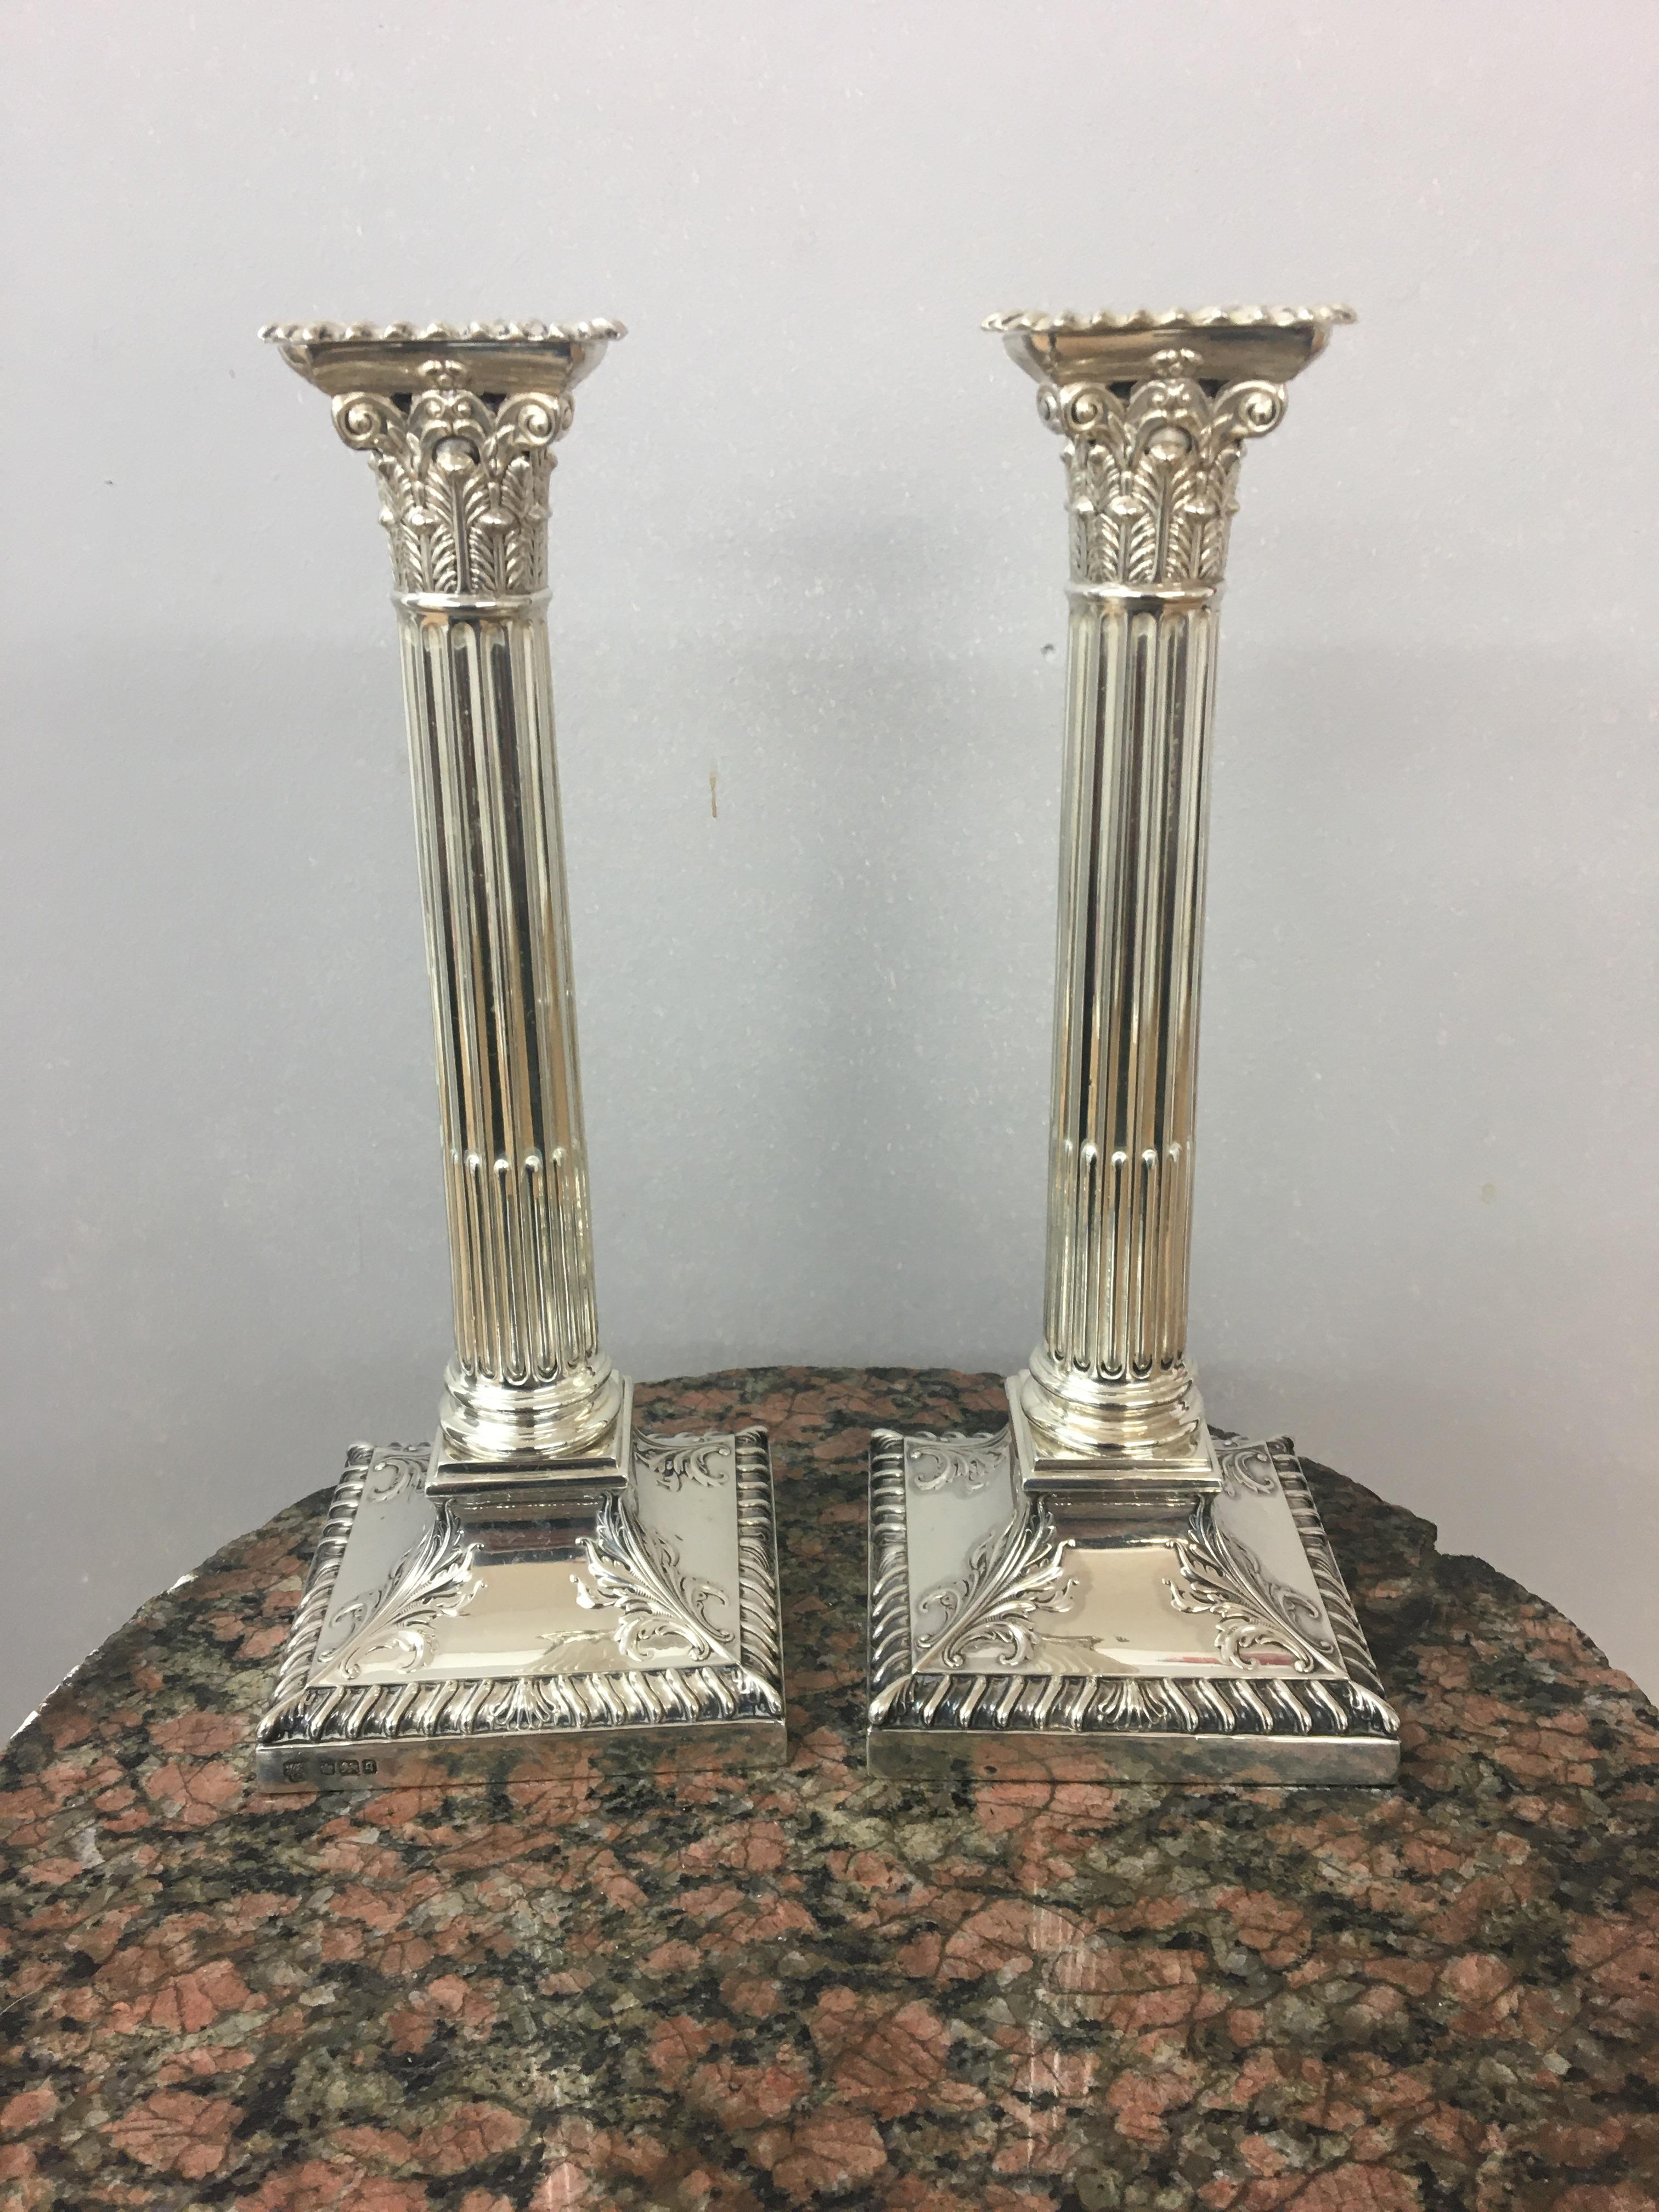 Edwardian silver Corinthian candlesticks, Sheffield, 1908, Hawksworth Eyre and co. height 24cm. - Image 3 of 4